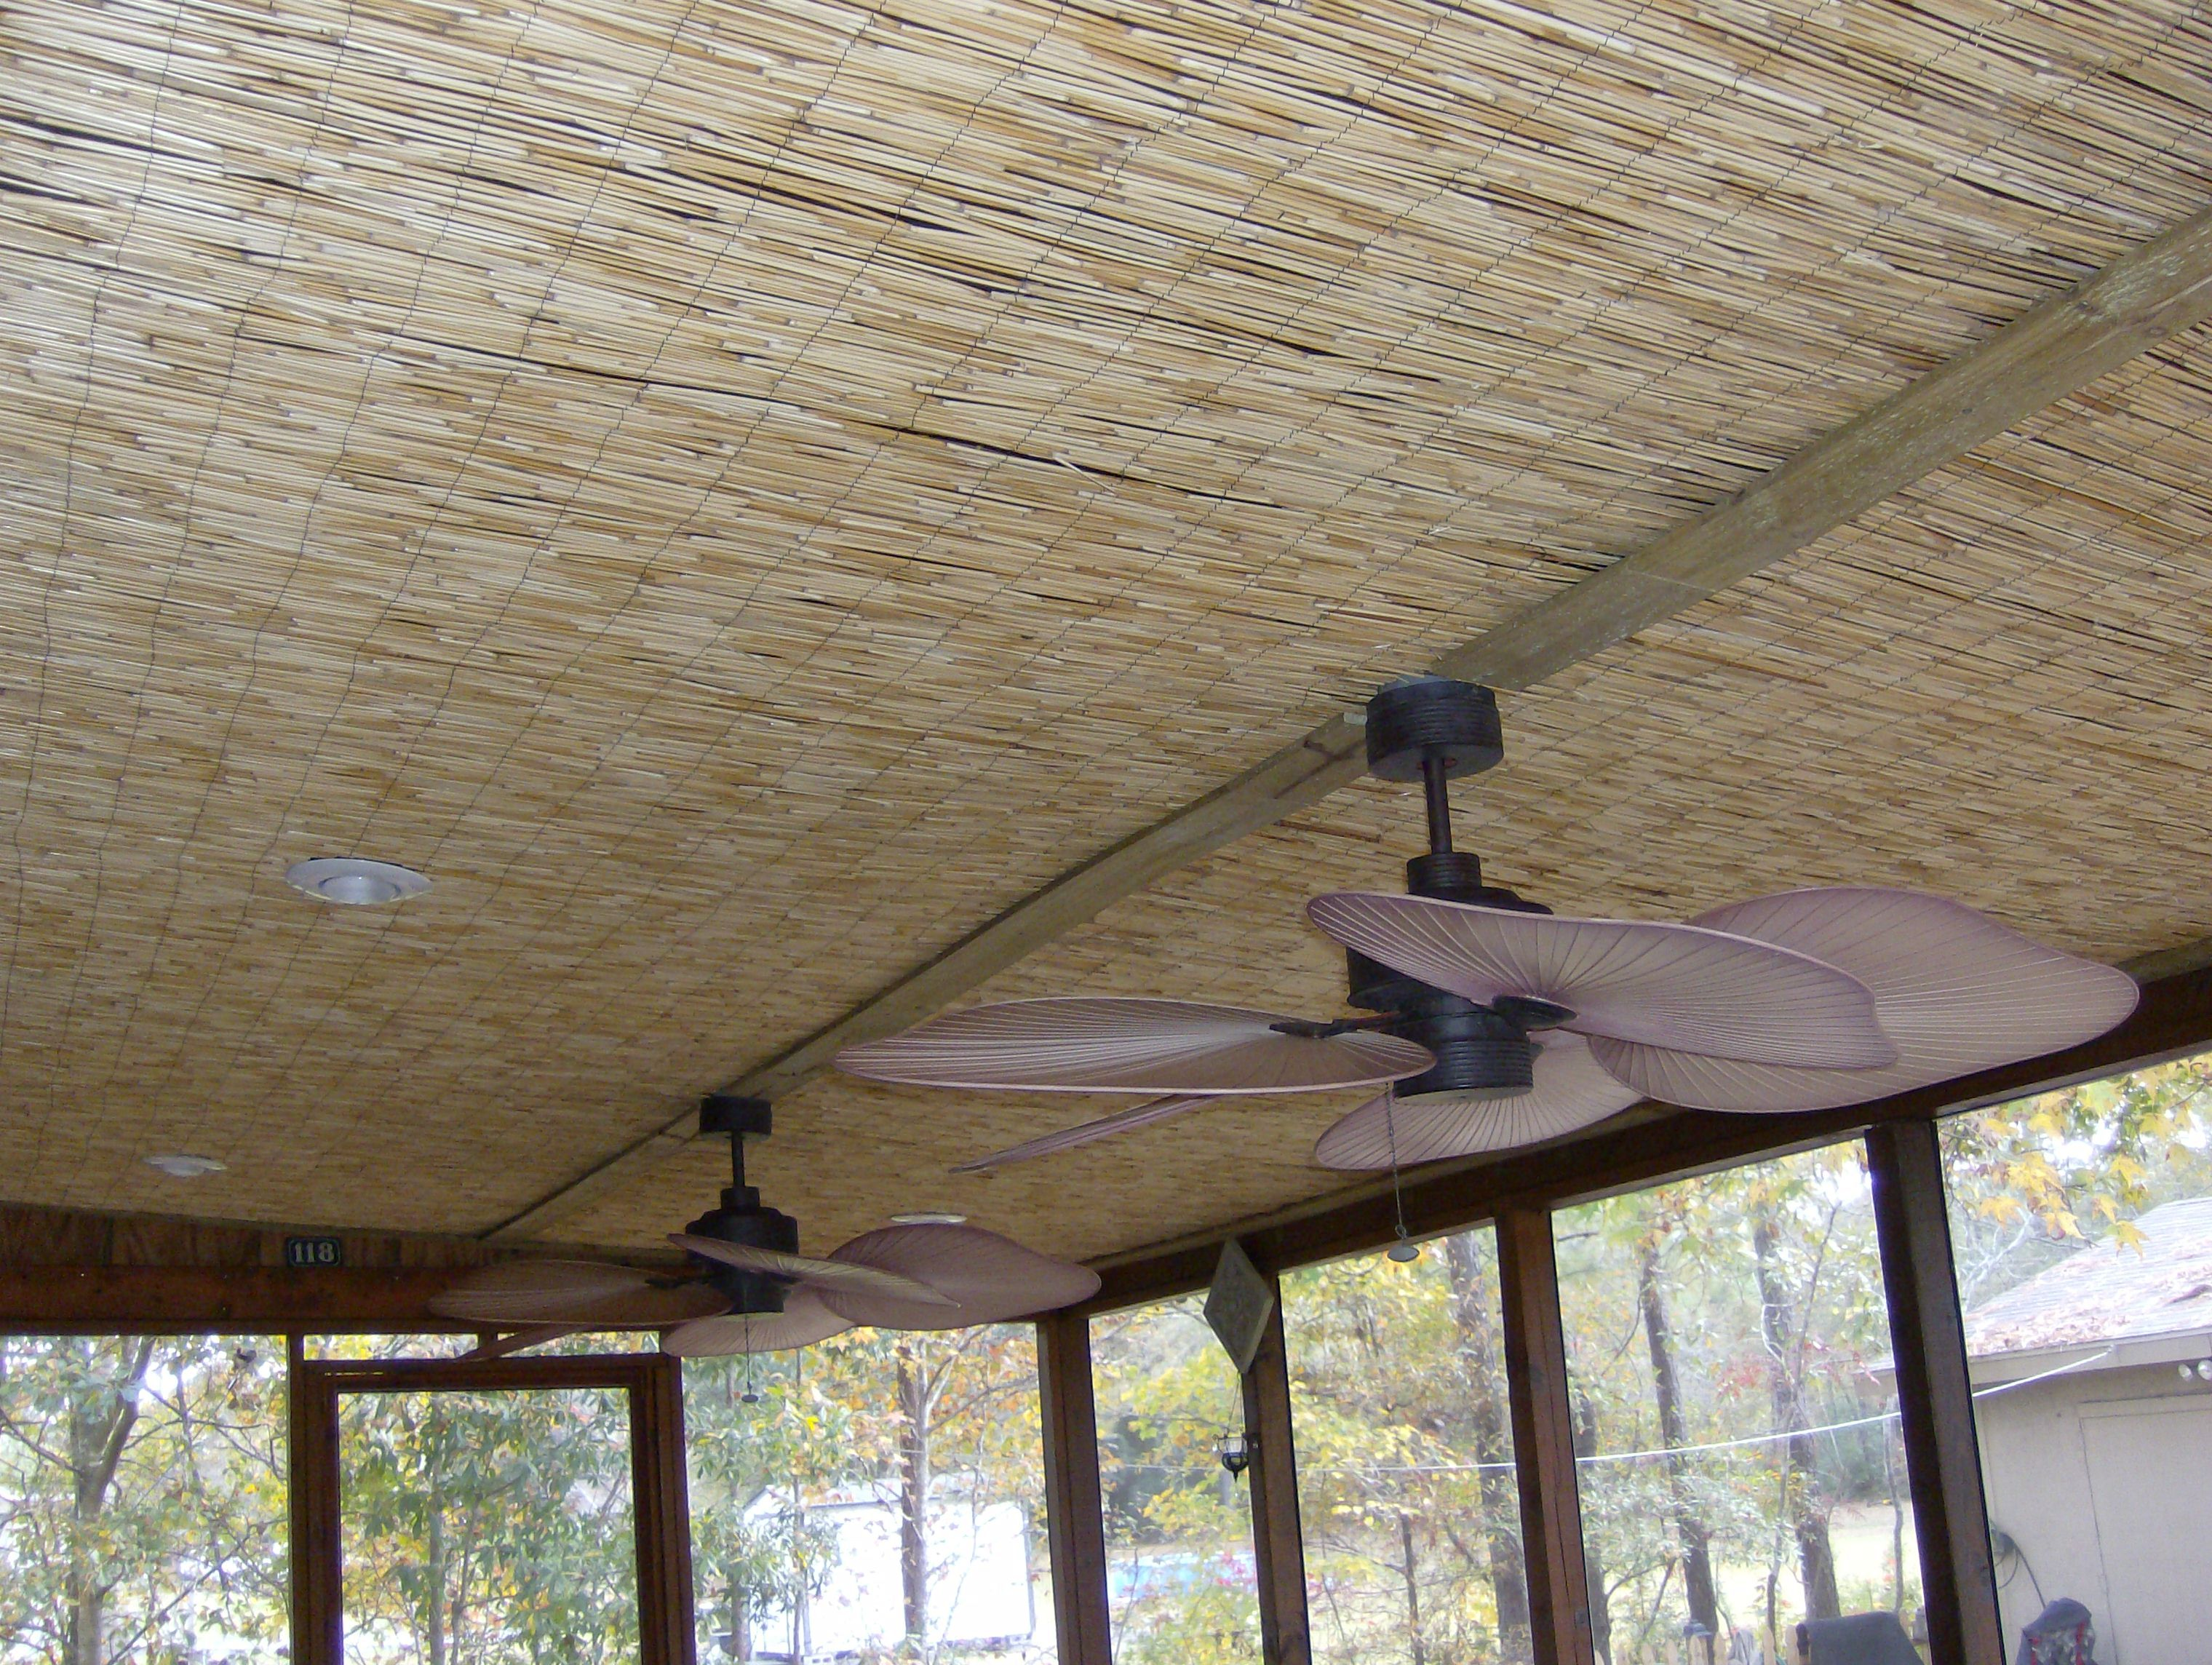 Looking For Cheap Ideas To Finish A Garage Ceiling For My Future Sewing Room O Approximately 100 00 For Porch Ceiling Basement Ceiling Easy Basement Ceiling